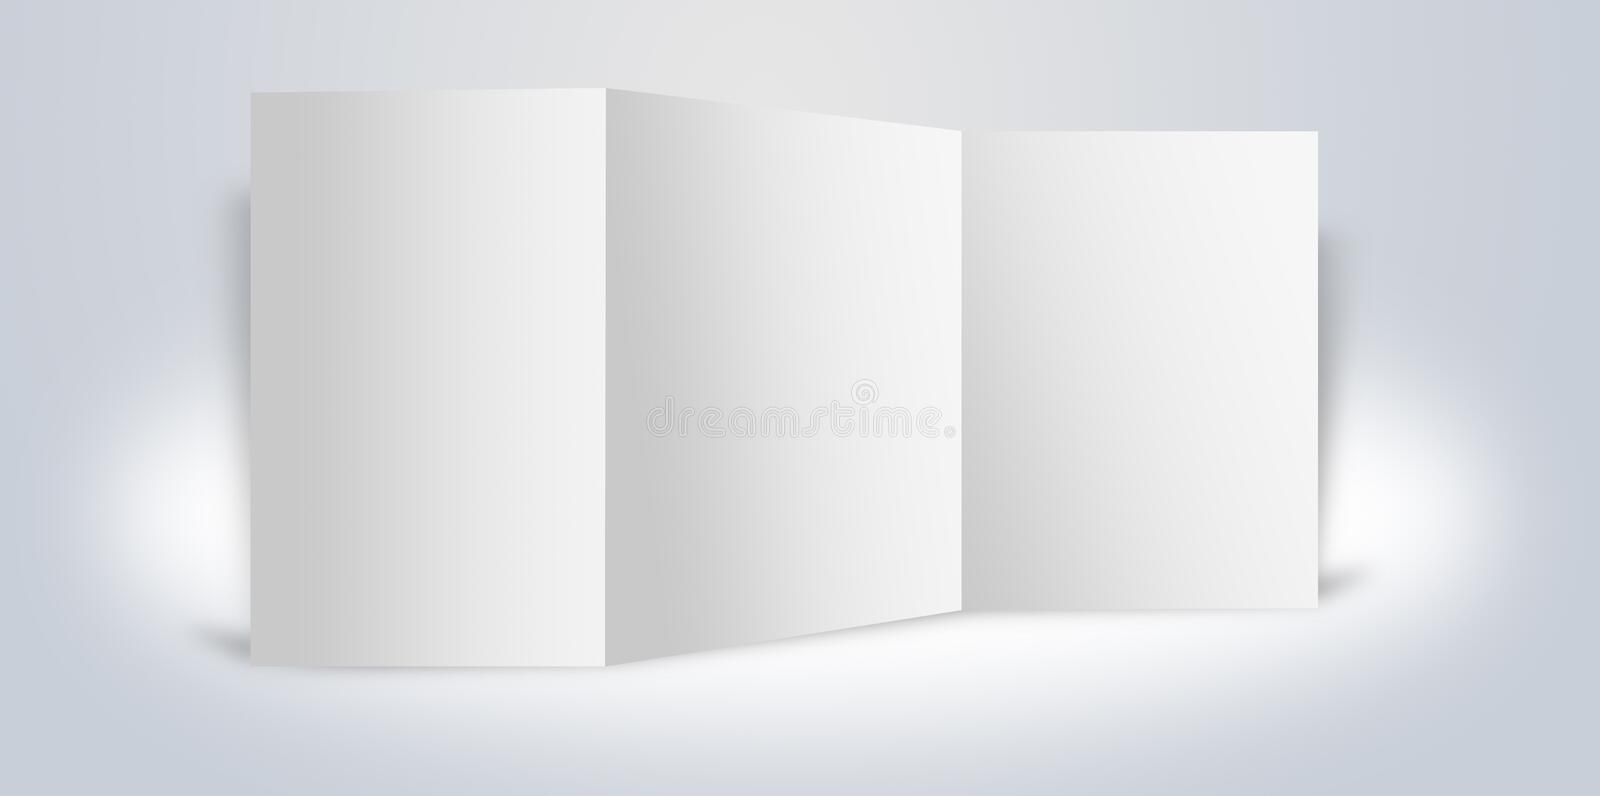 Blank advertising boards stand stock illustration